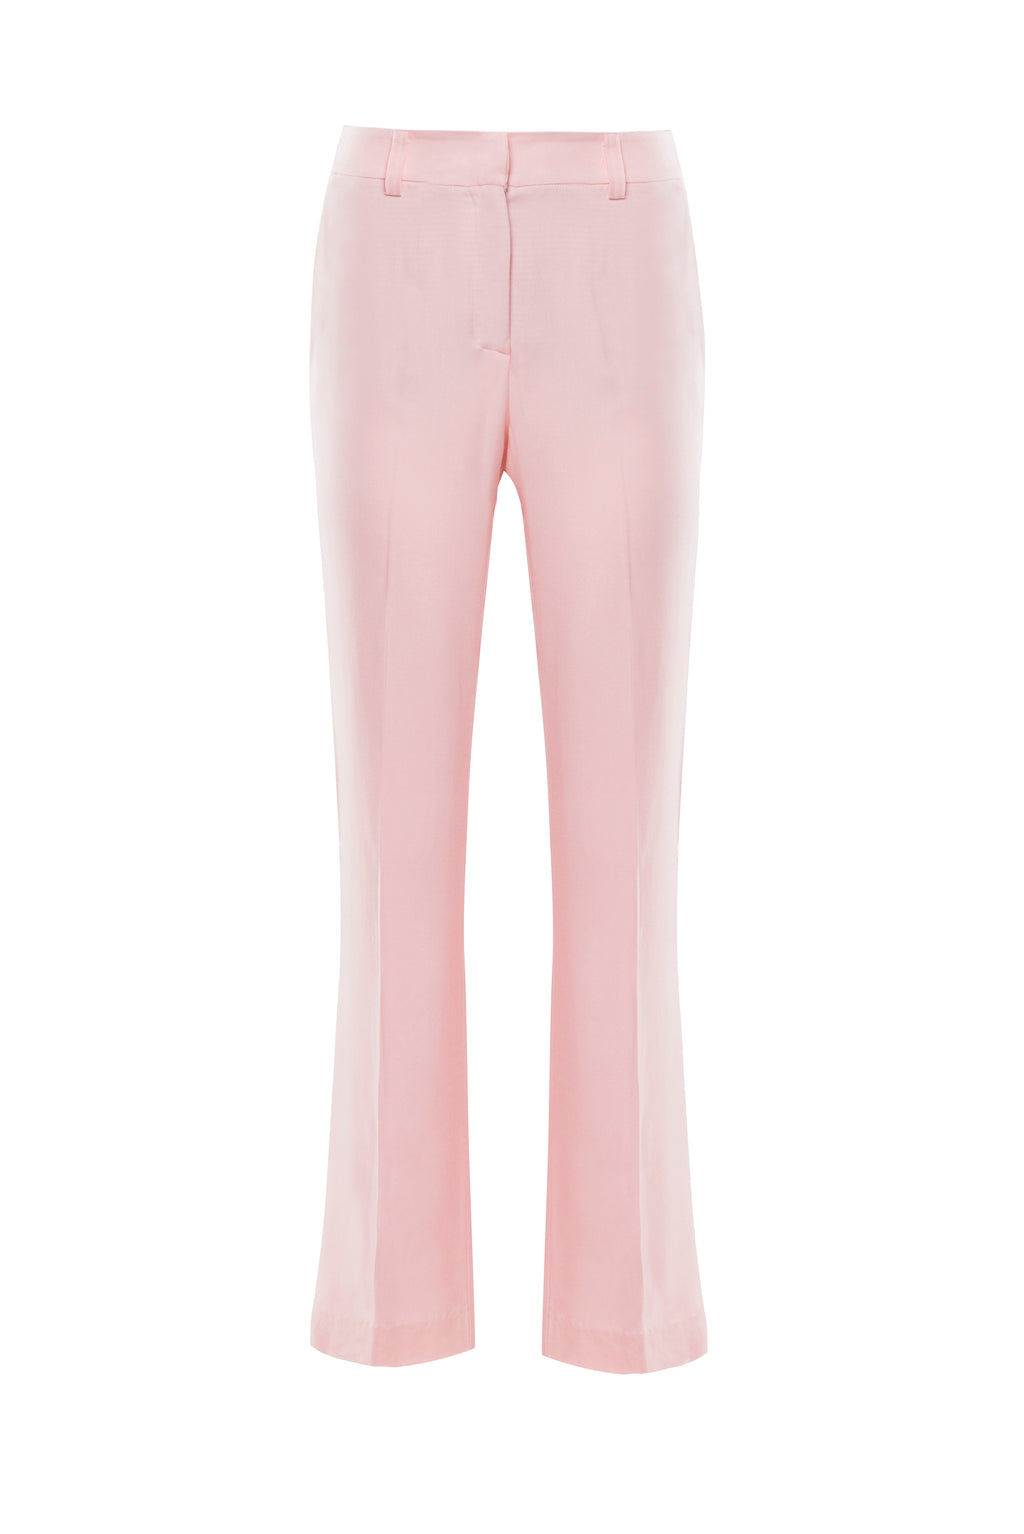 The Baby Pink Lover Pants